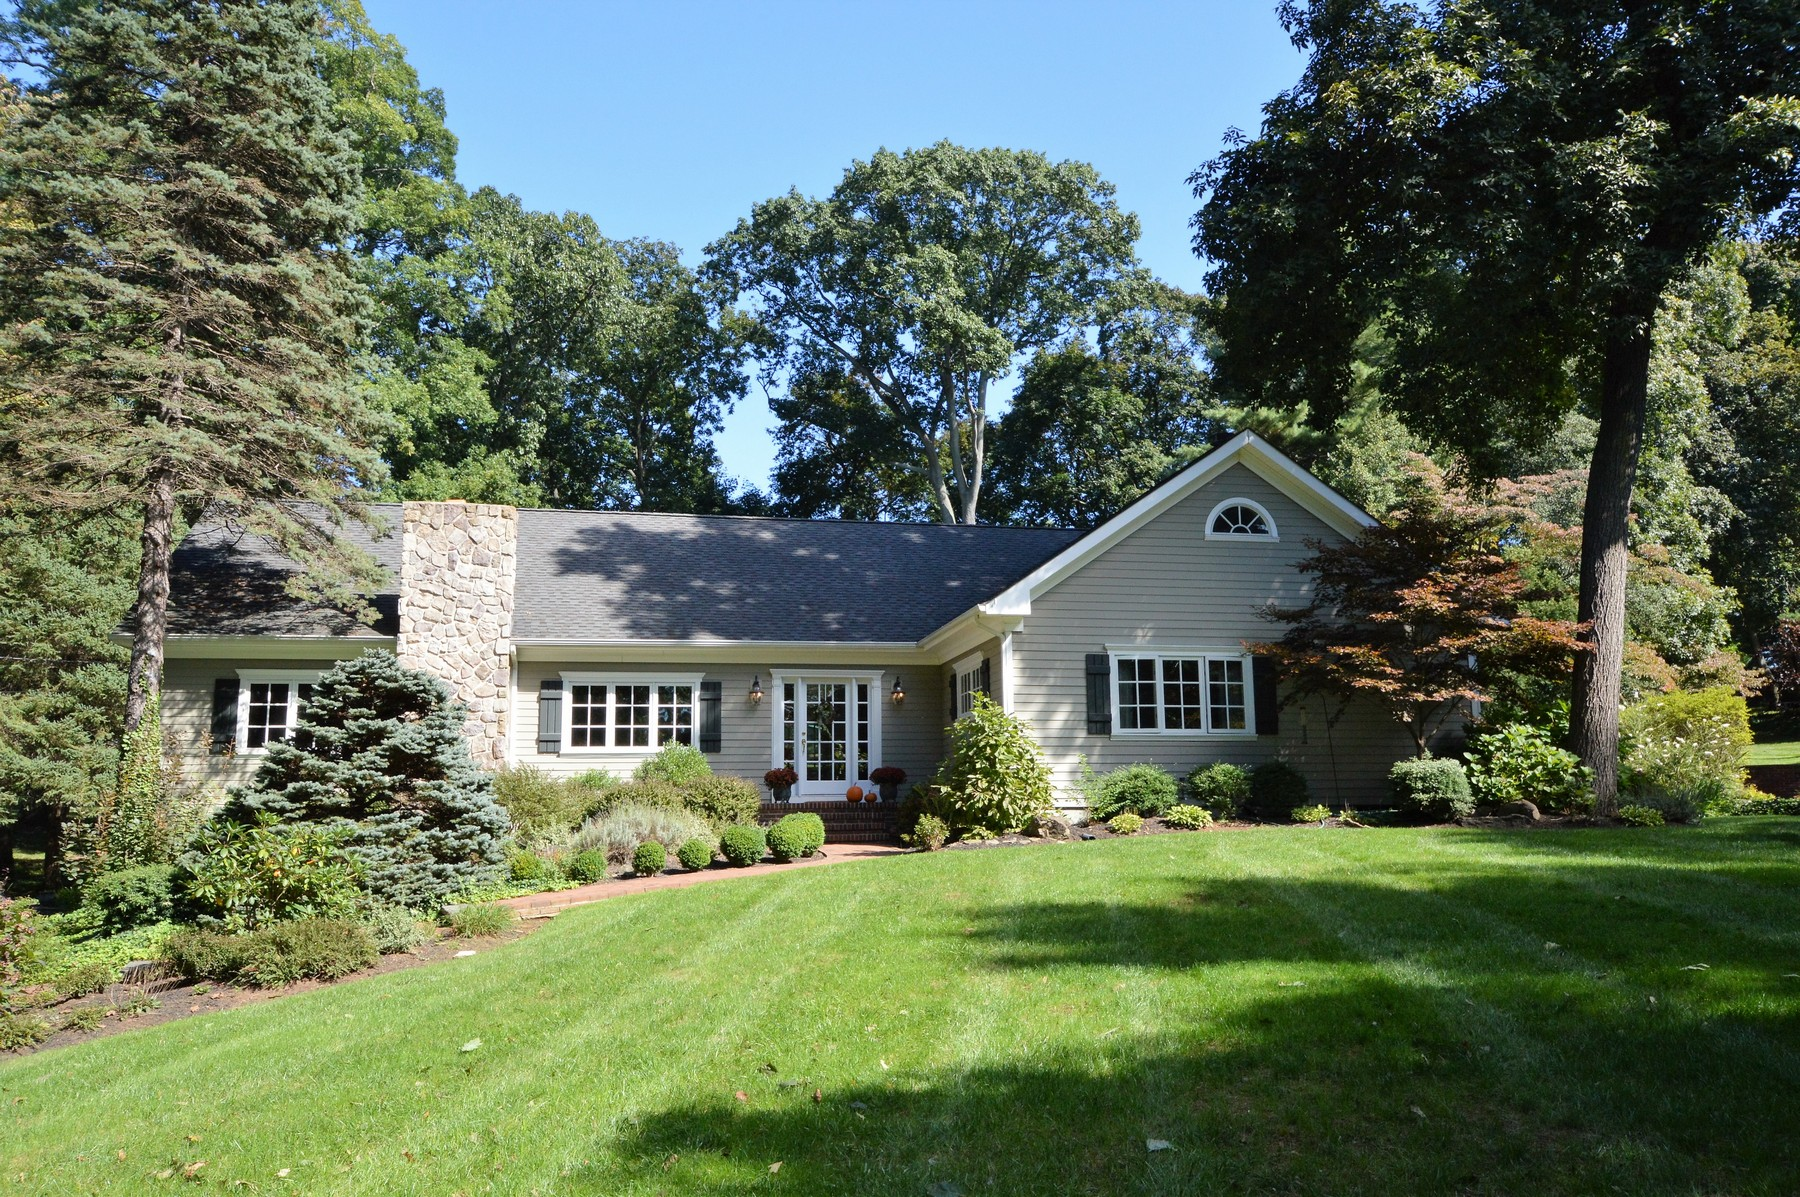 Single Family Home for Sale at Rumson, NJ - Expanded Ranch 15 Circle Drive Rumson, New Jersey, 07760 United States